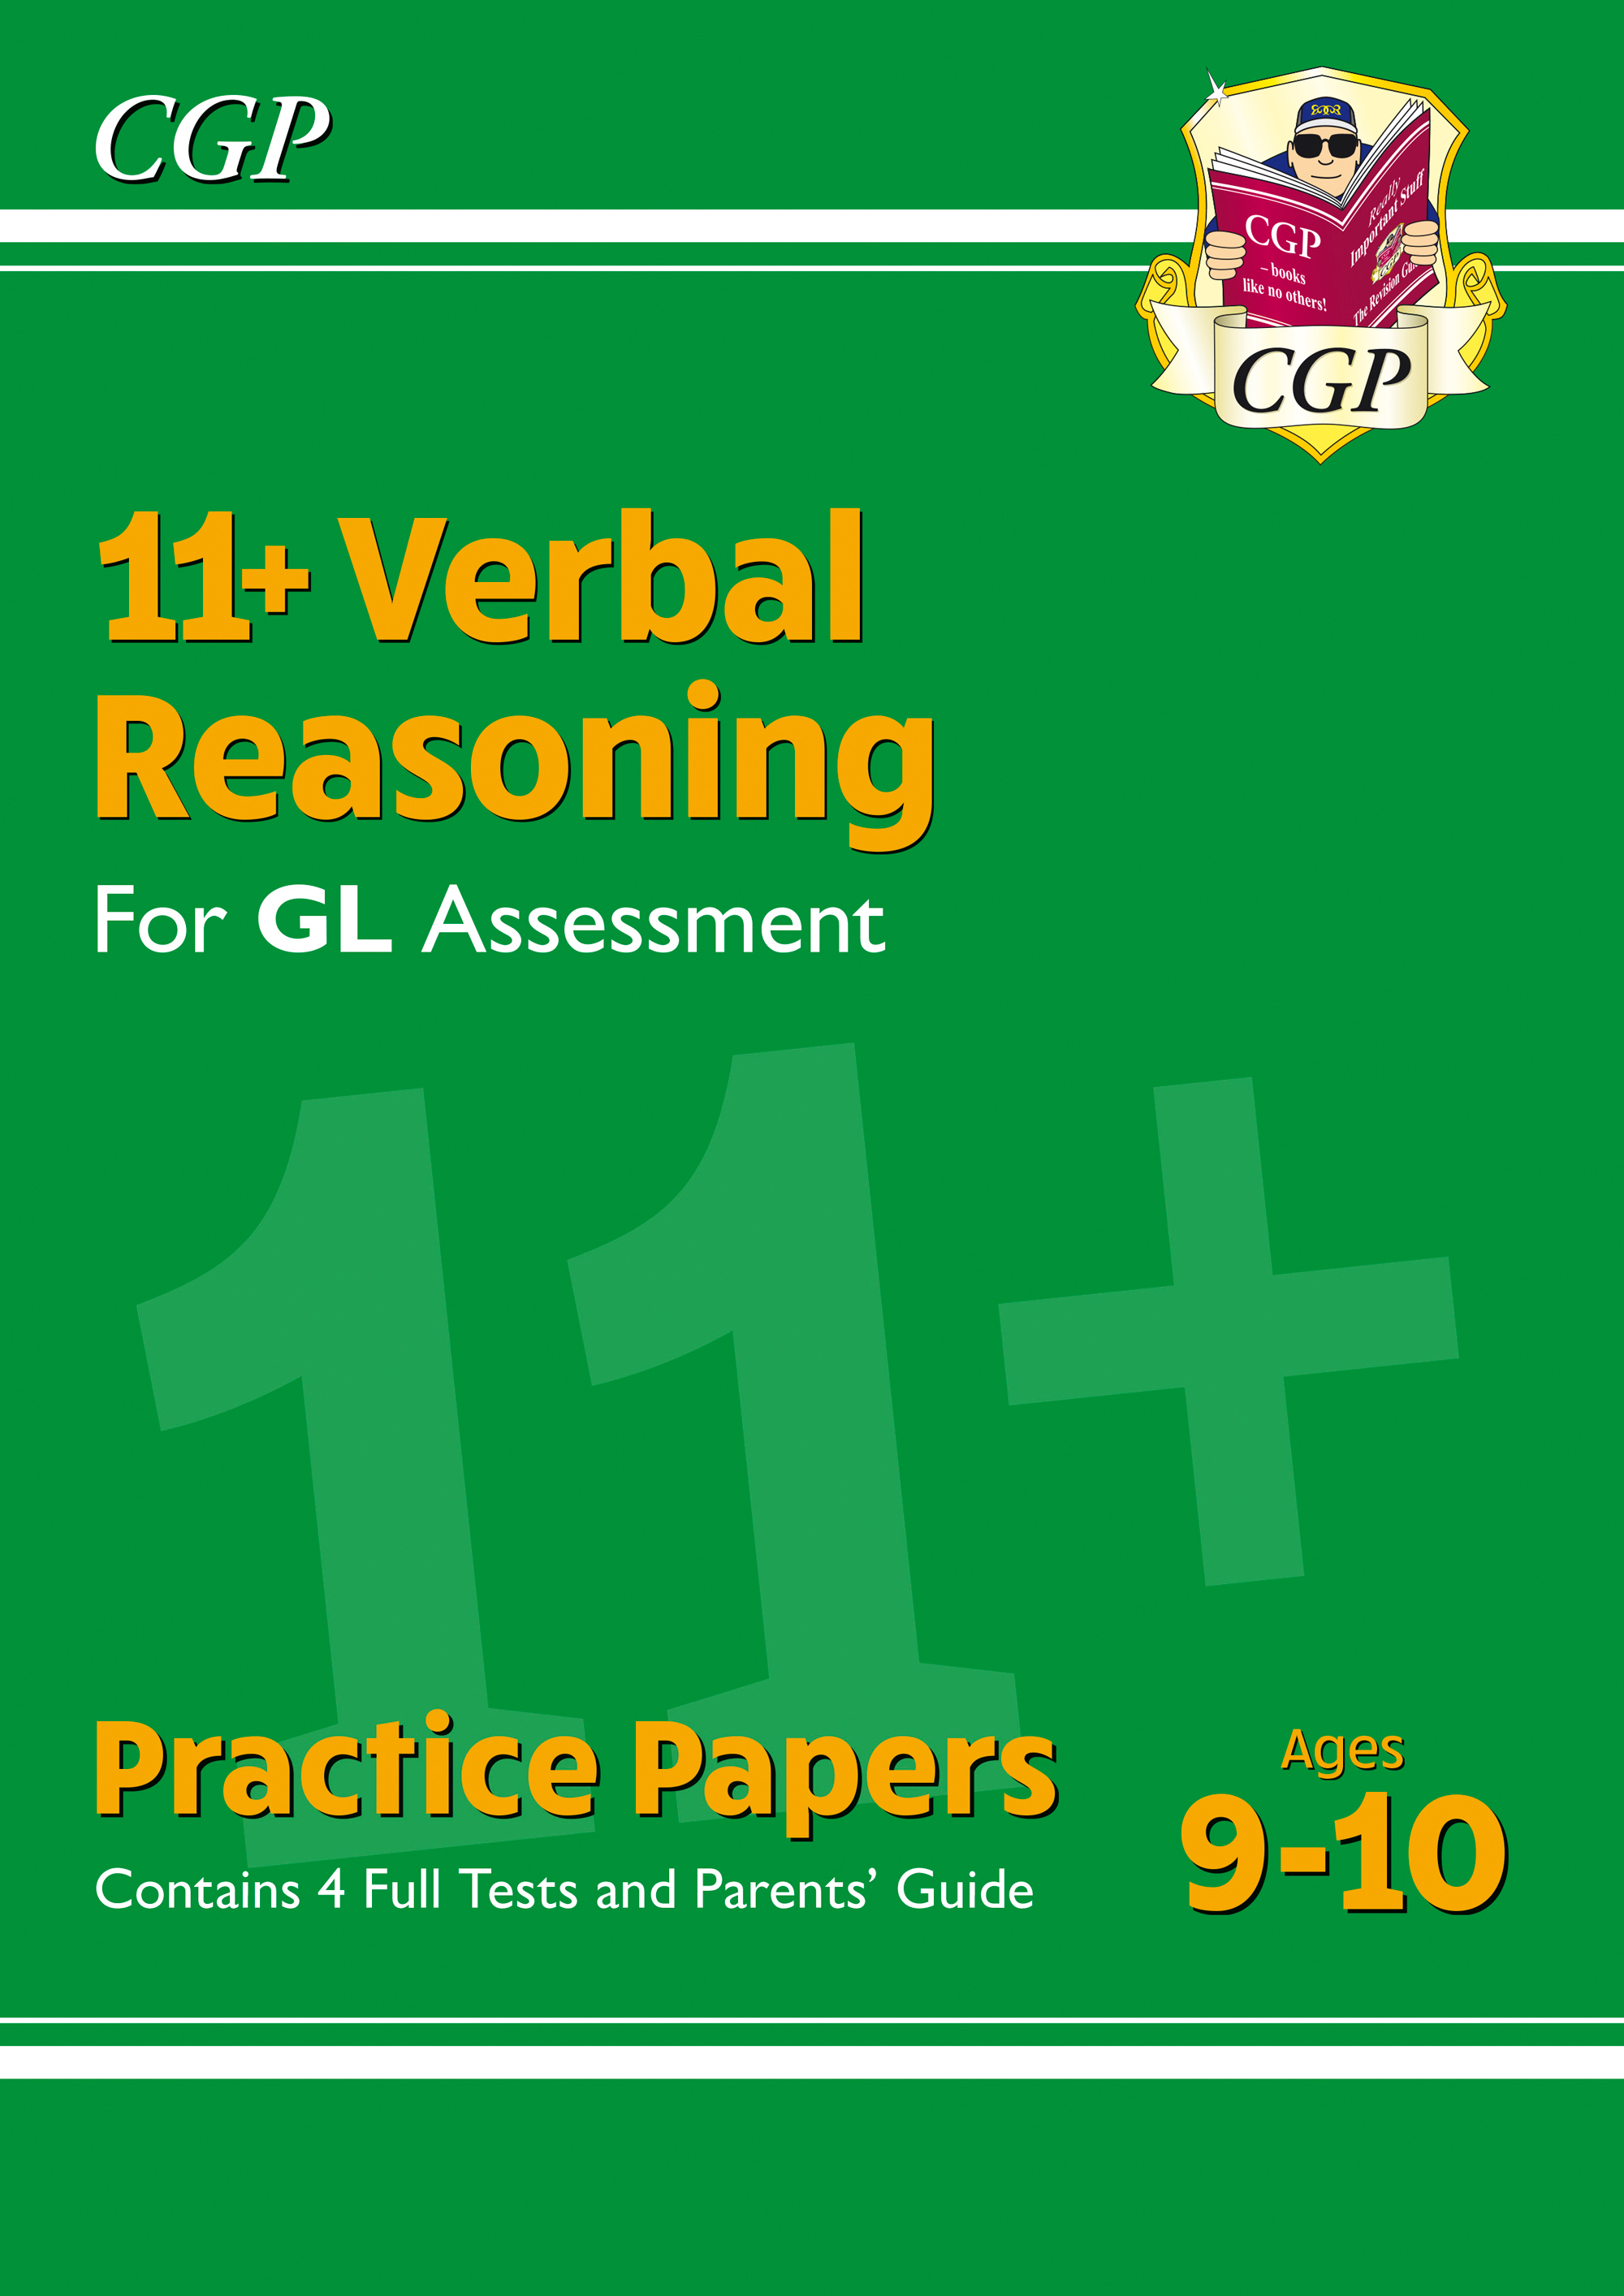 VH5PE1DK - New 11+ GL Verbal Reasoning Practice Papers - Ages 9-10 (with Parents' Guide)